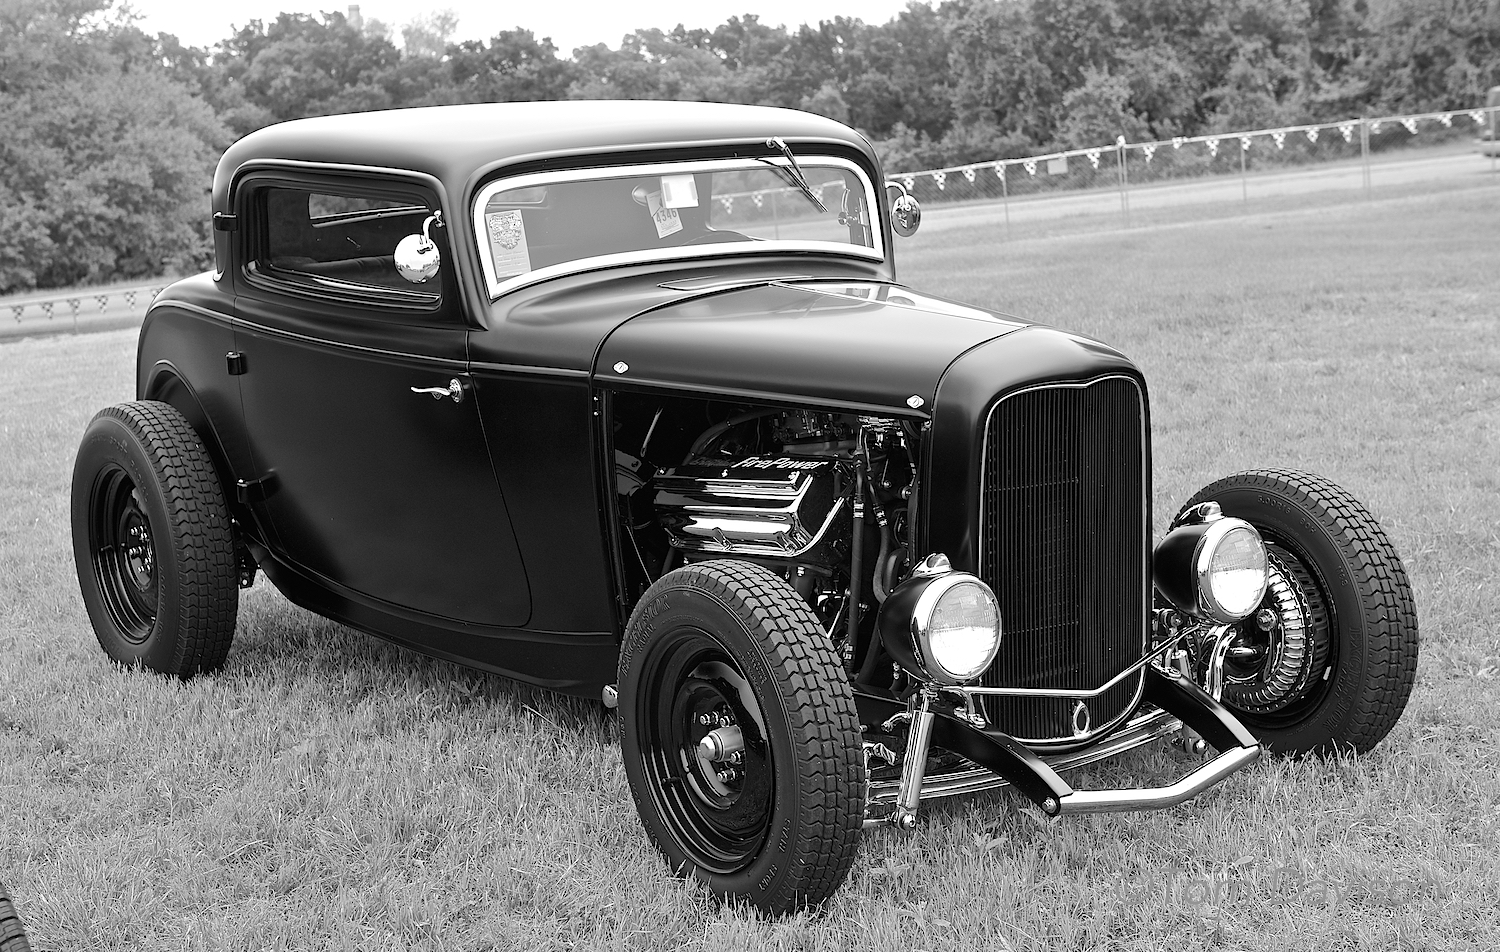 A 1932 Ford Coupe, hemi-powered. It was driven to the show from the East Coast.